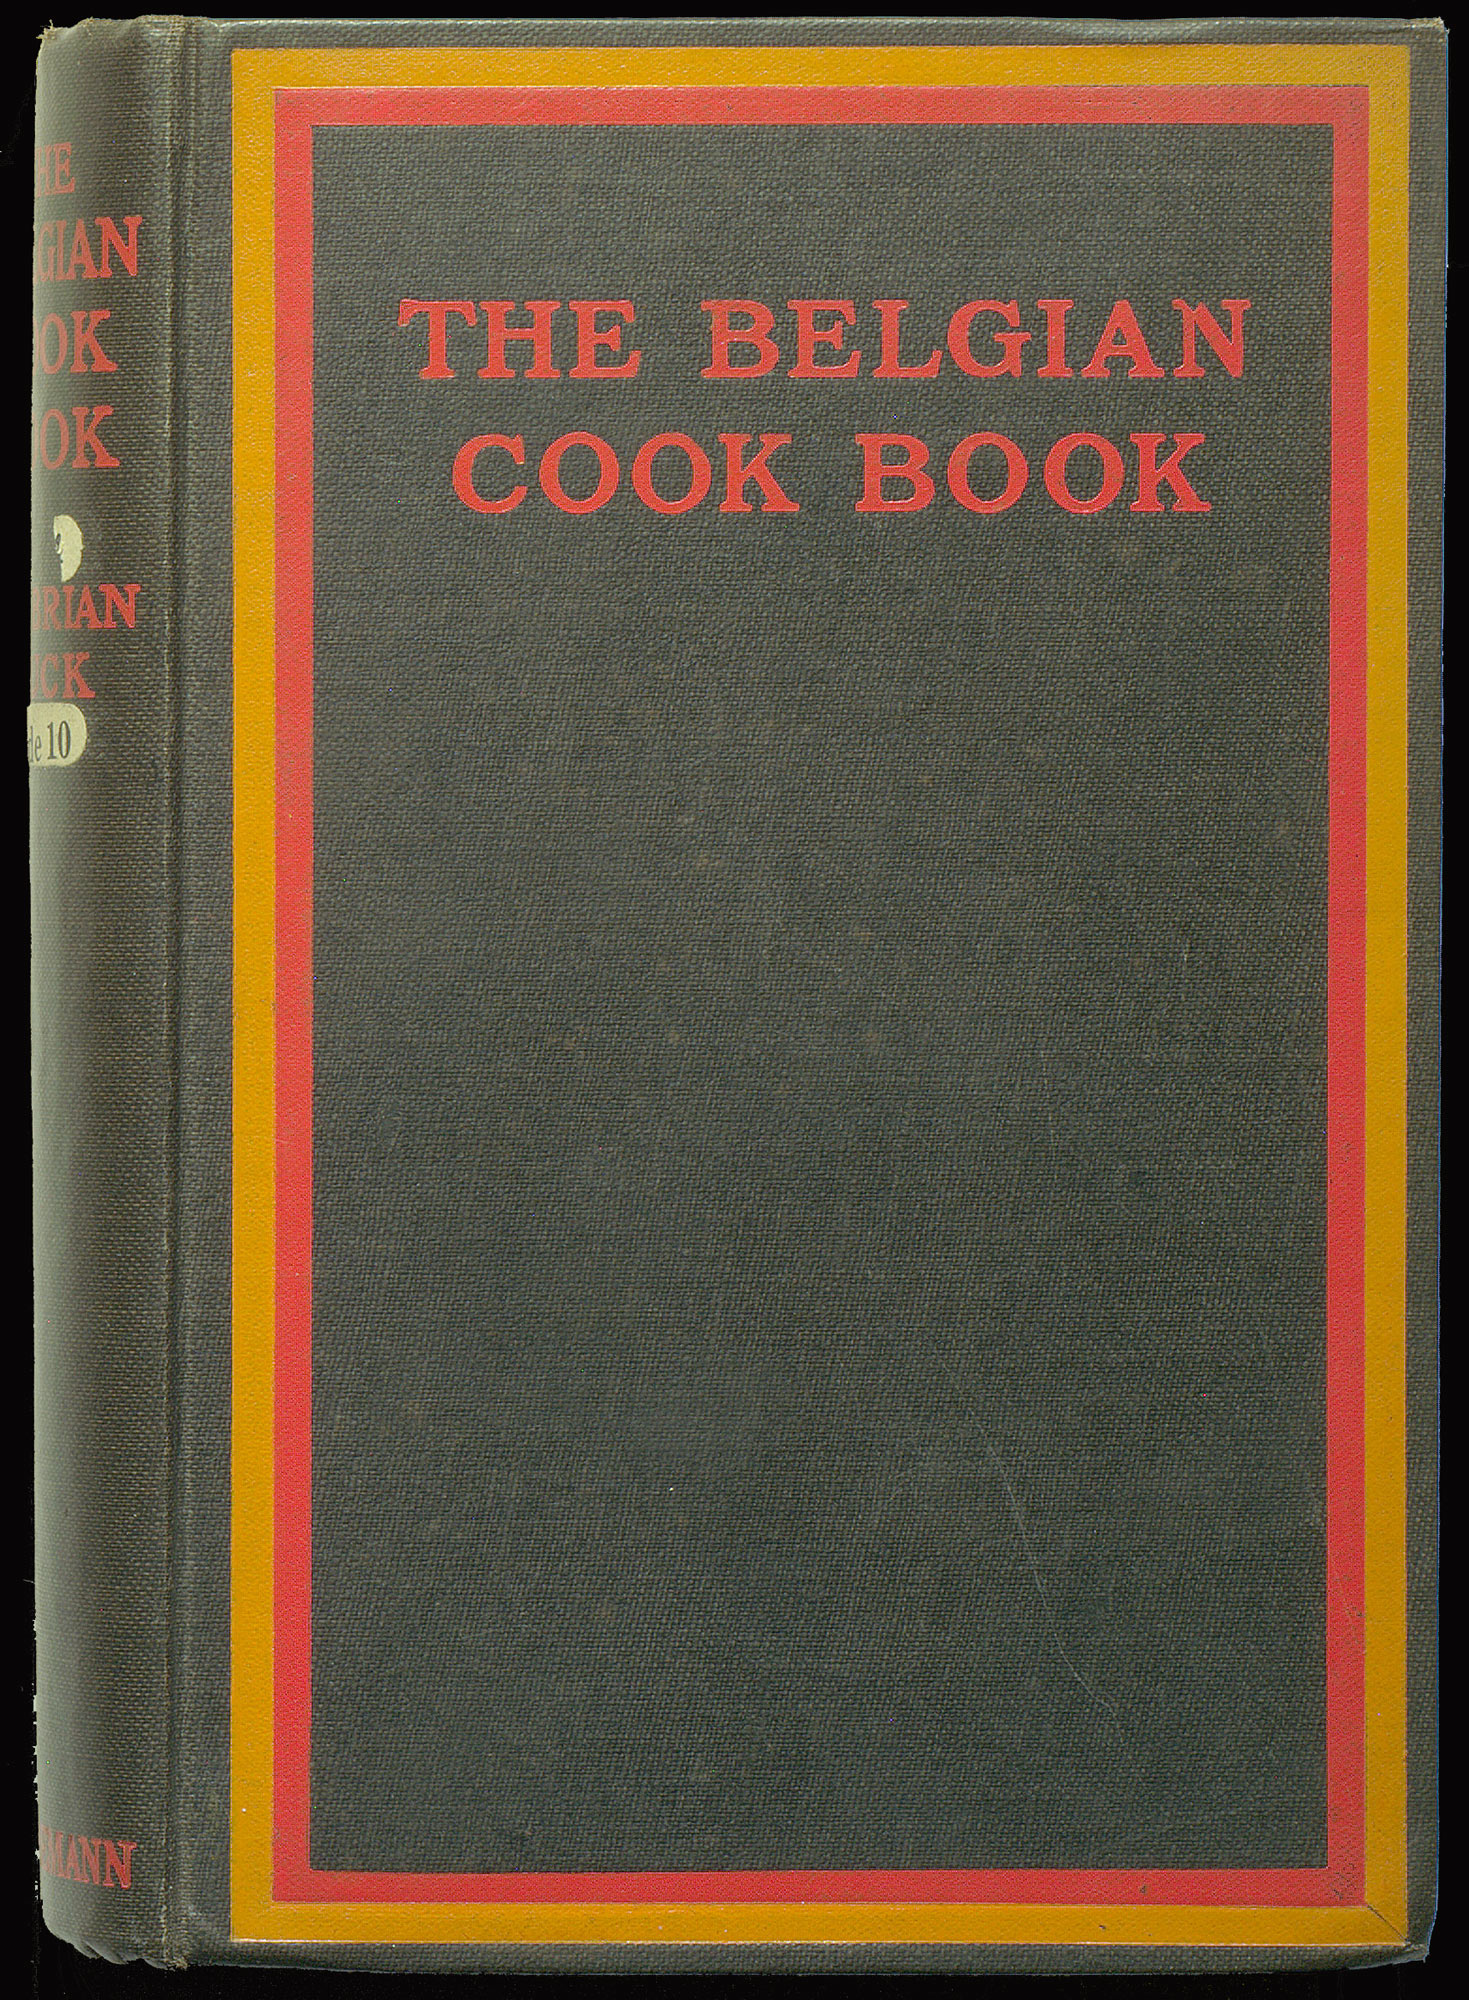 'The Belgian Cook Book' consists of recipes 'sent in by Belgian refugees from all parts of the United Kingdom', 1915.